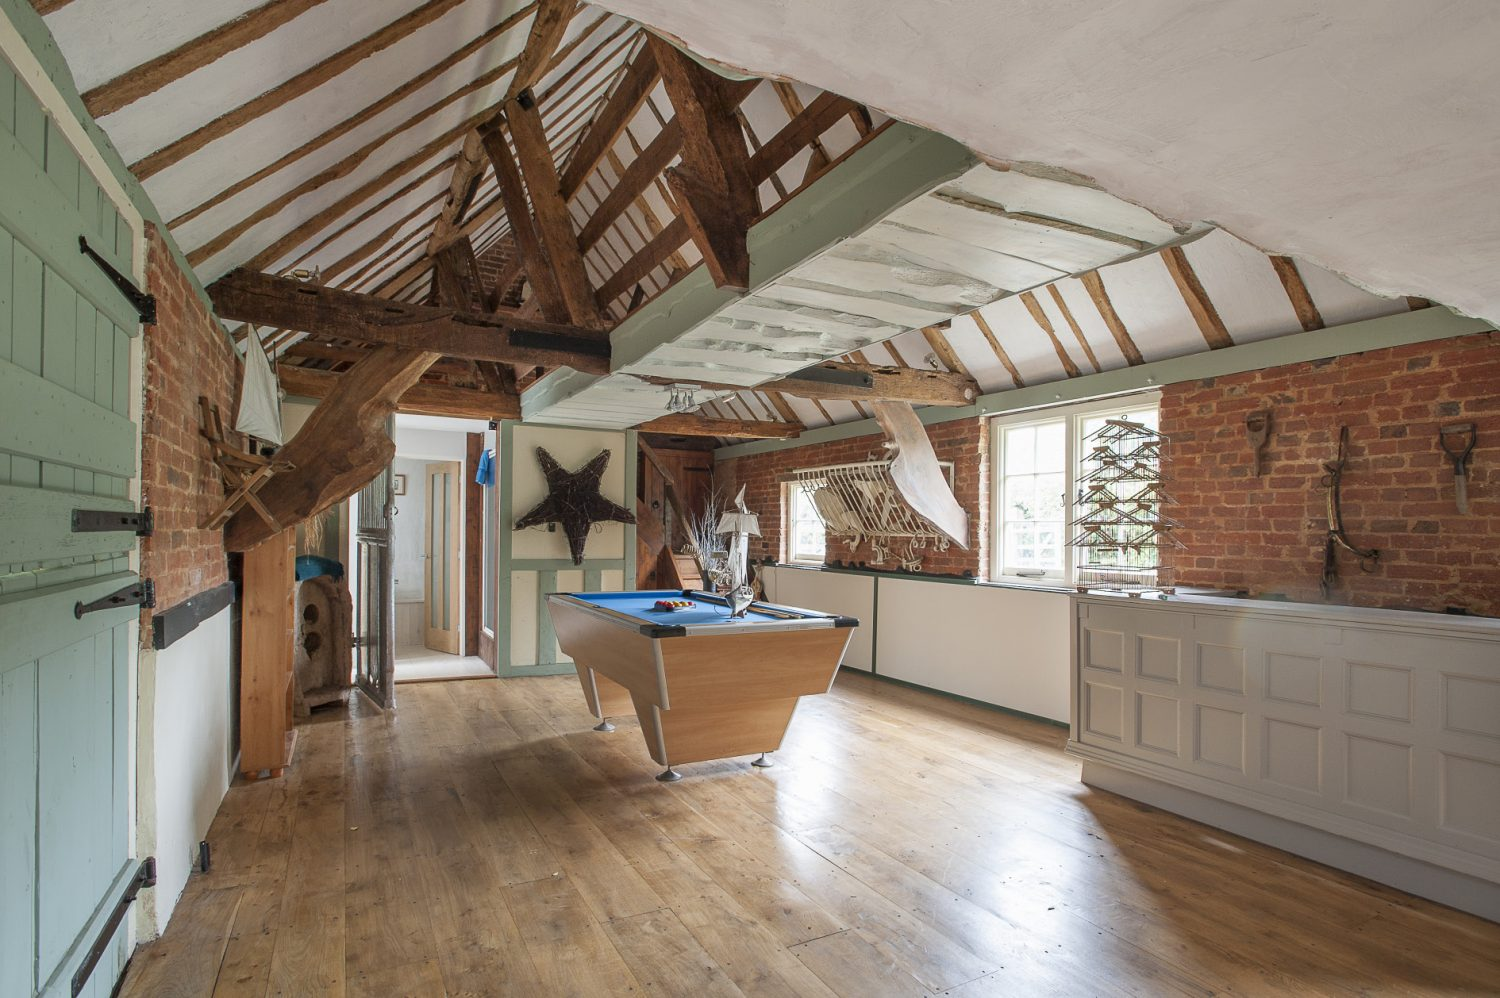 An old farm building that was once a dairy and stable has been sensitively restored to create additional living space, with many of the original features remaining like the doors and old iron stall dividers